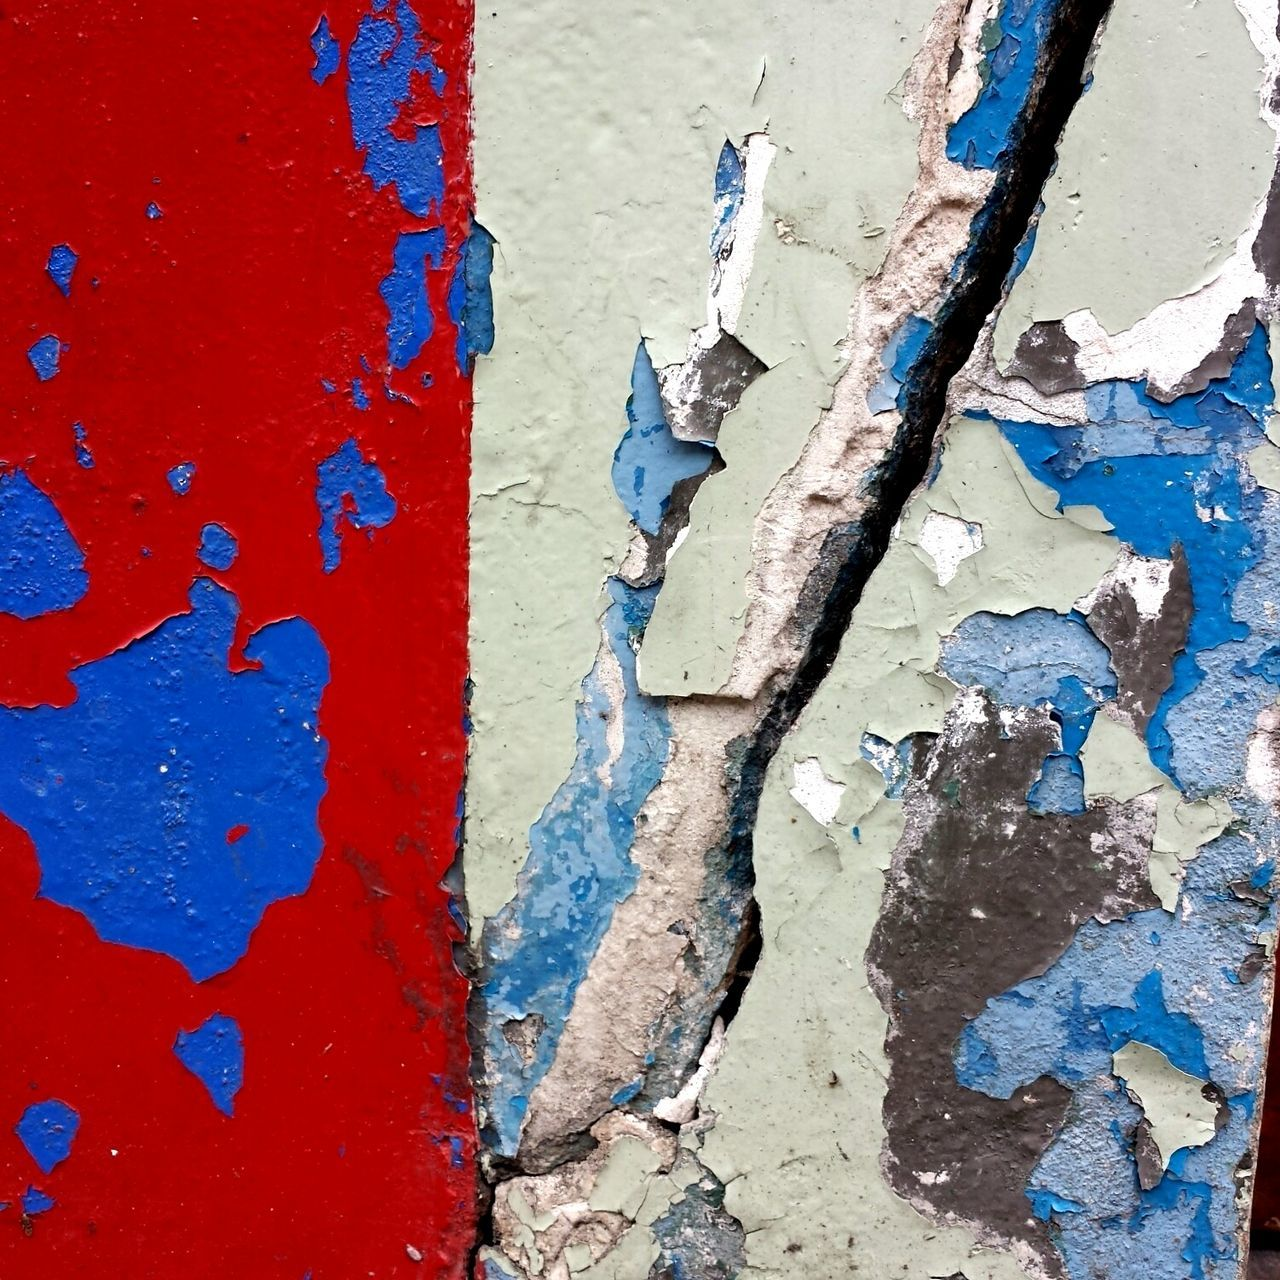 Wall Abstract Paint Decay Unintentionalart Accidentalart Unintentional Art Accidental Art